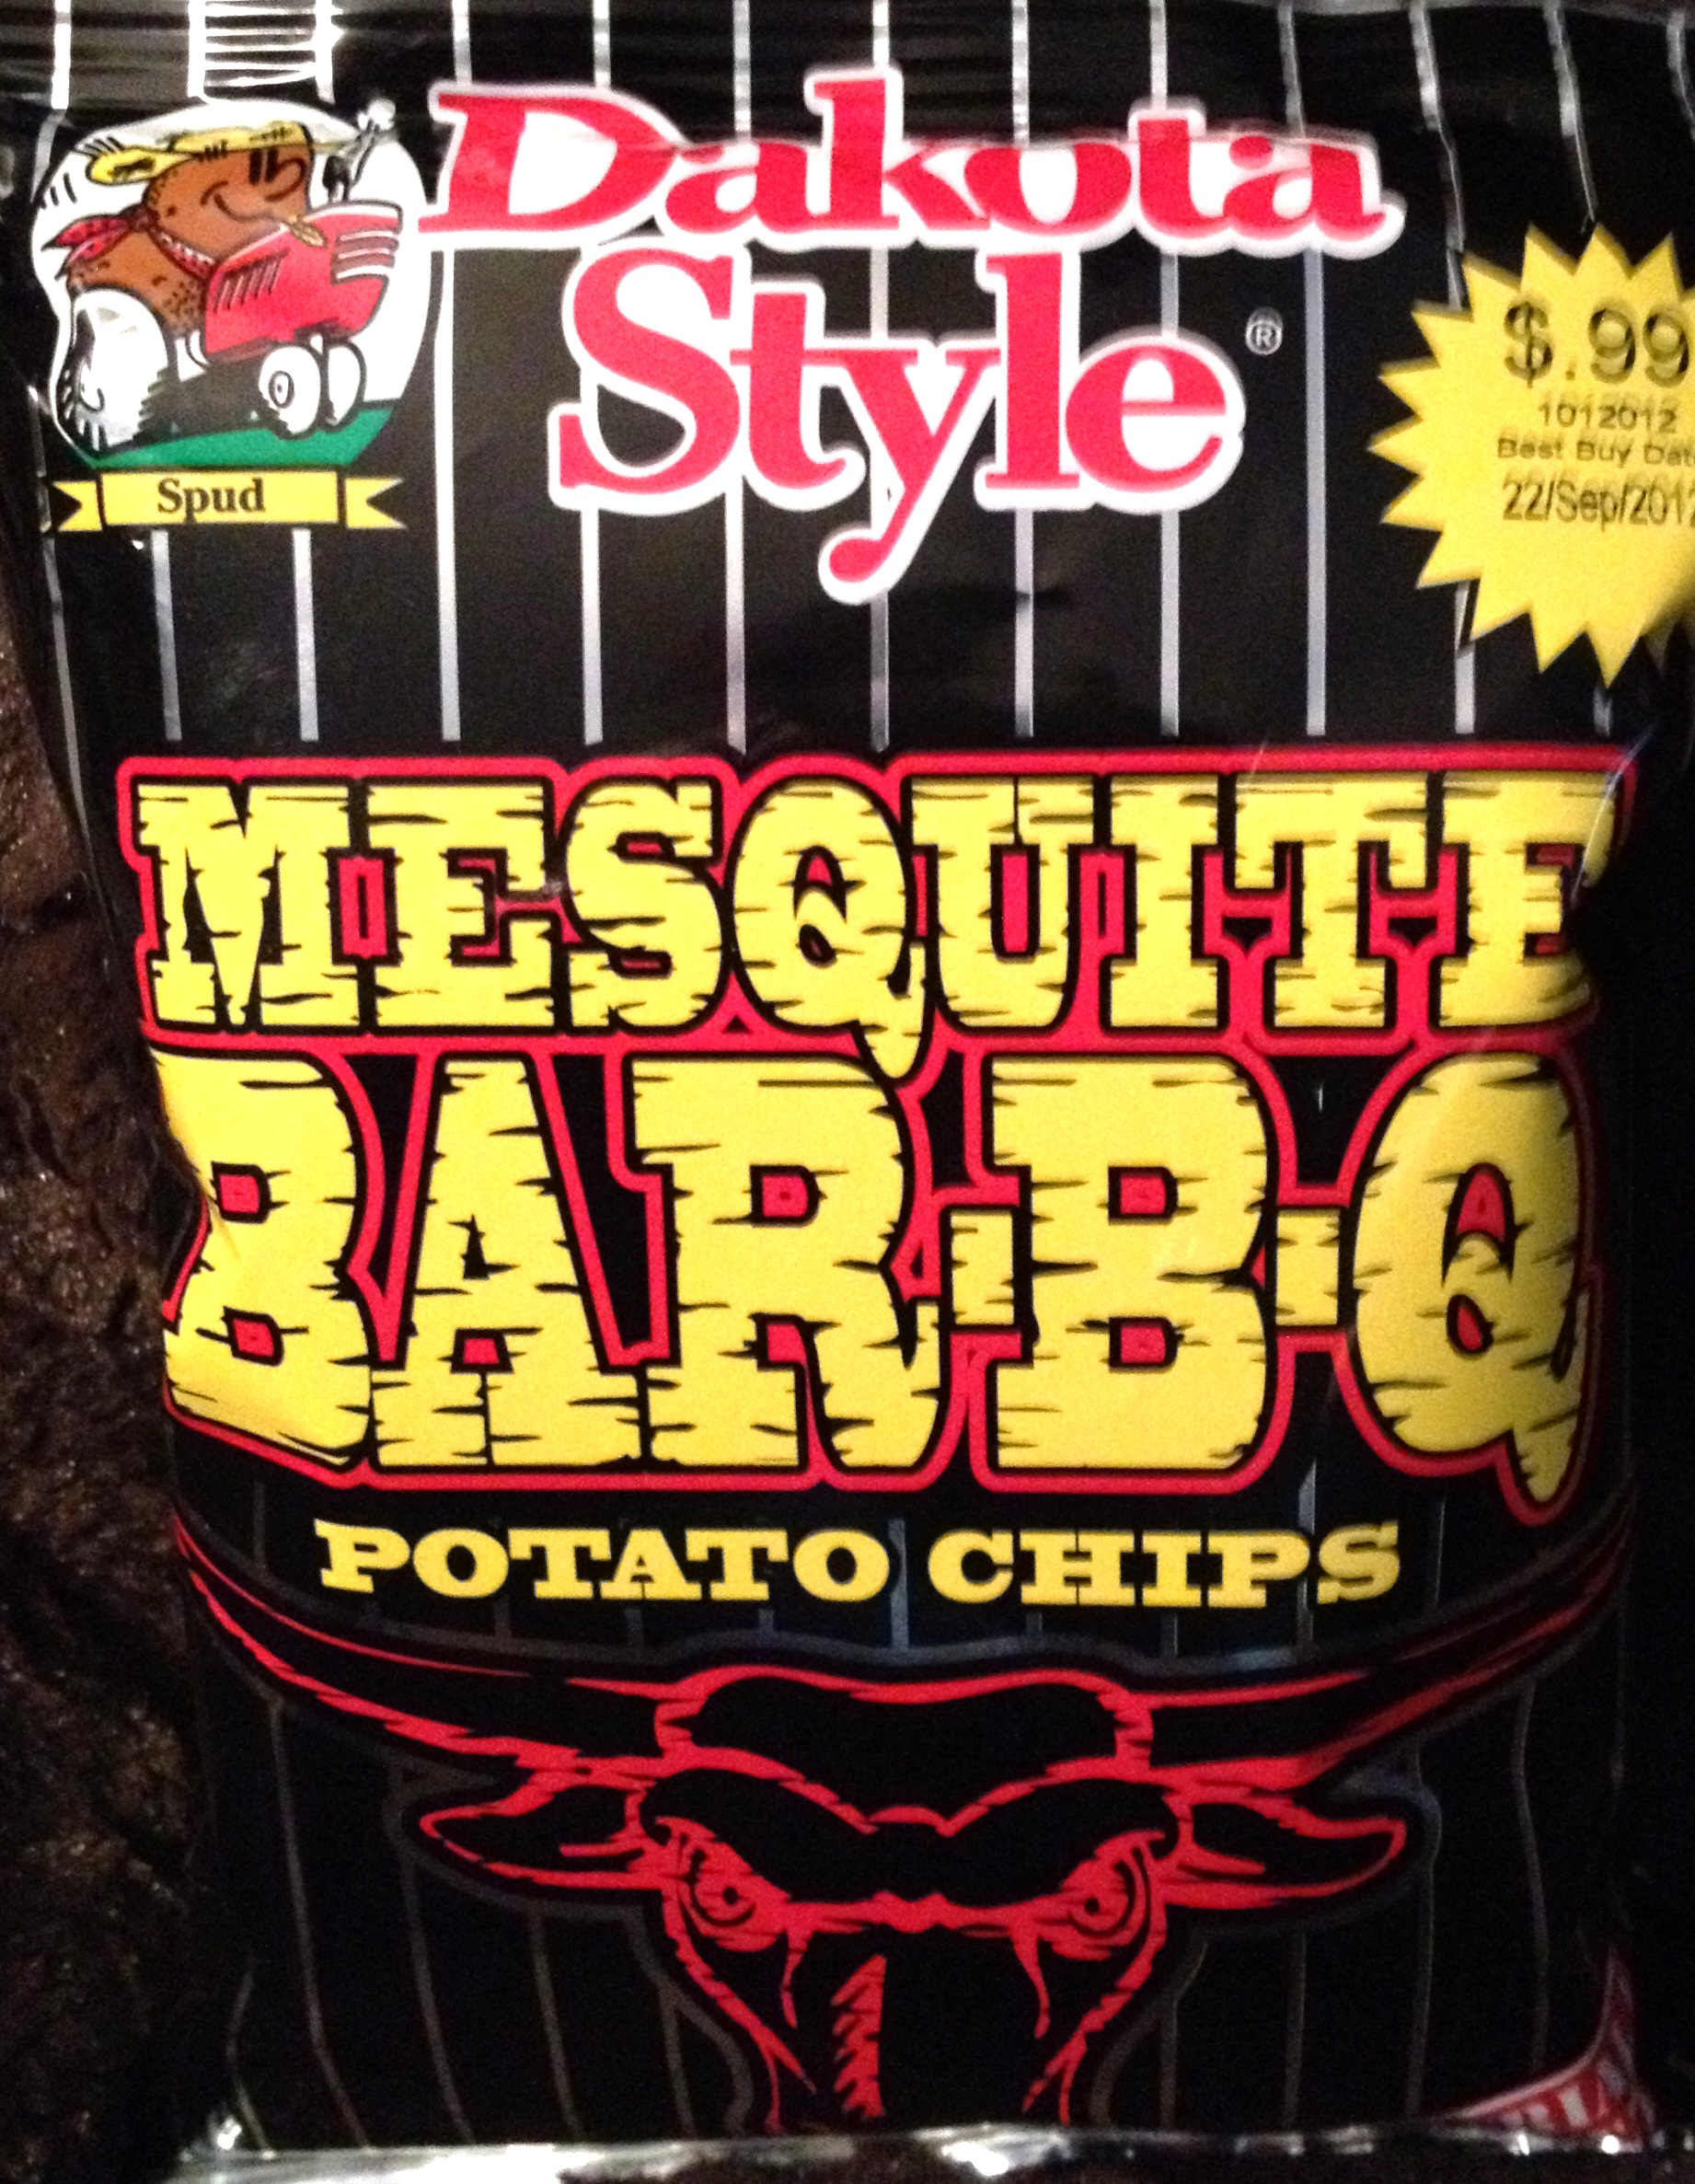 Barbecue Chips Barbecue Chip Adventures